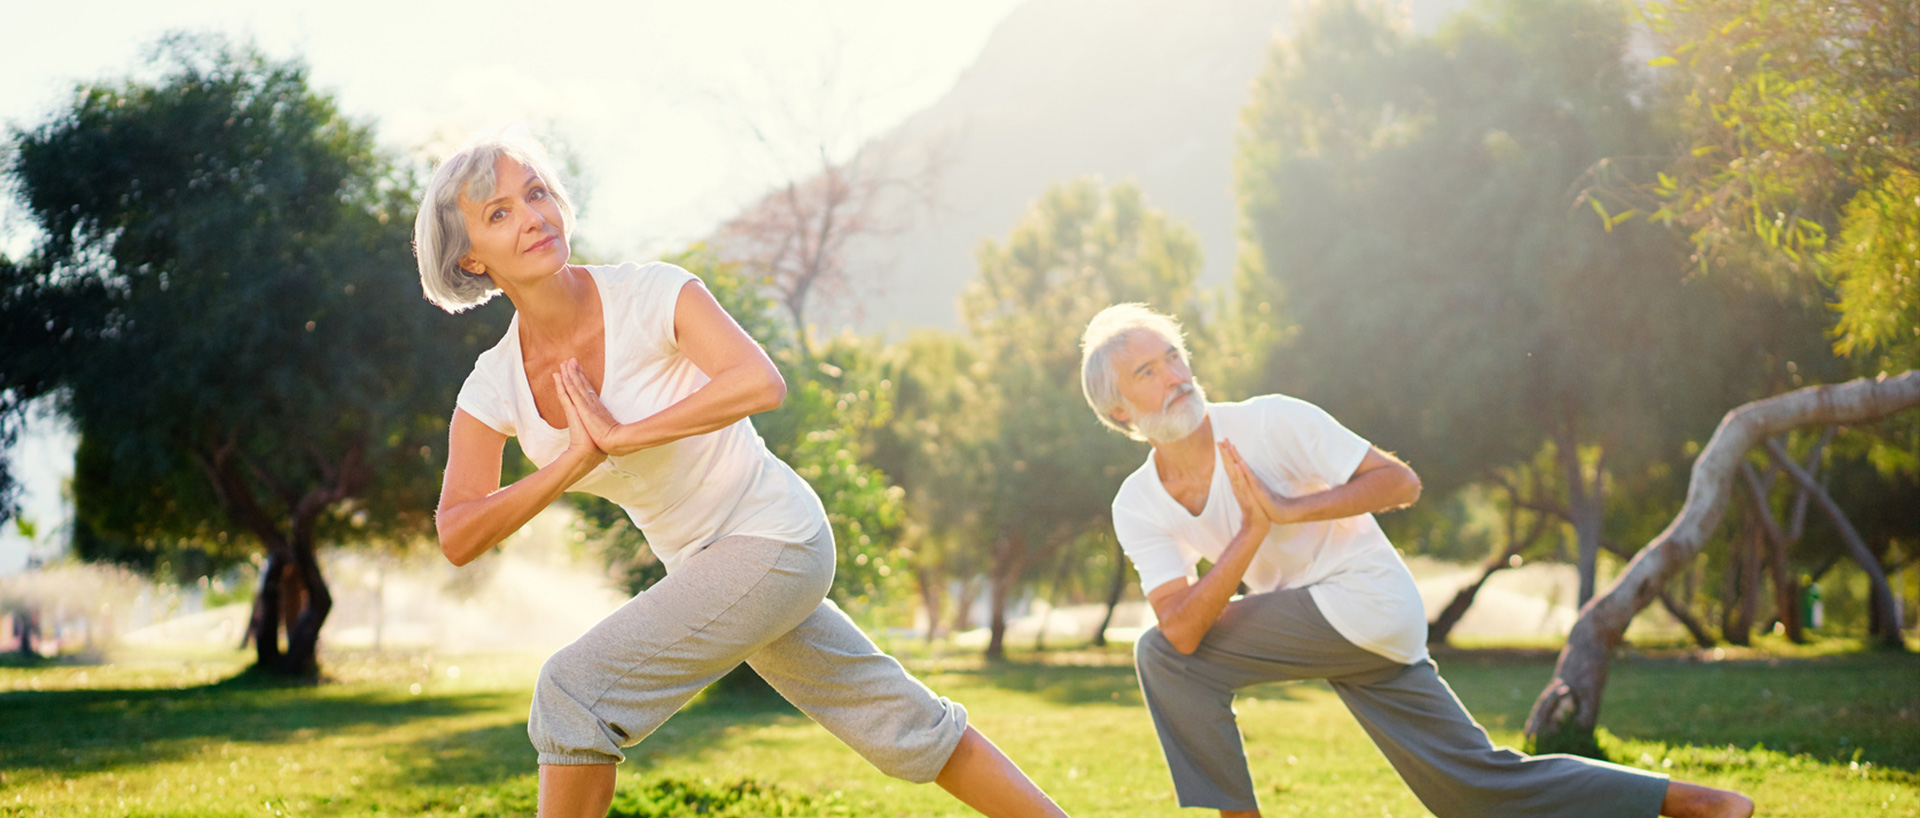 Physical Therapy Services - Southwest, FL   FYZICAL Therapy